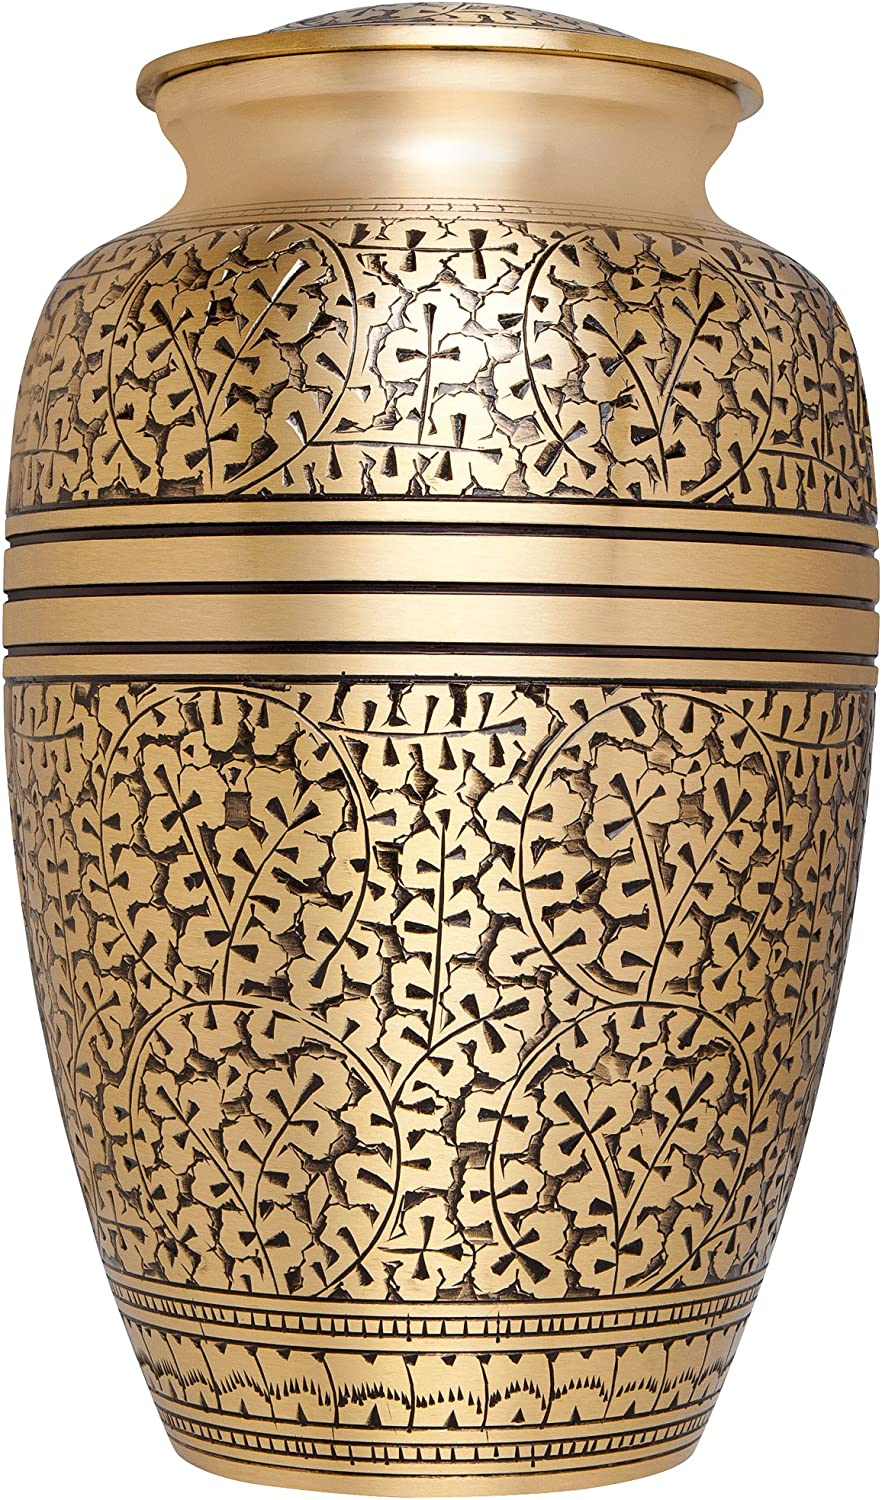 Liliane Memorials gold Funeral Cremation Urn with Leaves Branches Model in Brass for Human Ashes; Suitable for Cemetery Burial; Fits Remains of Adults up to 200 lbs, Large 200 lb,